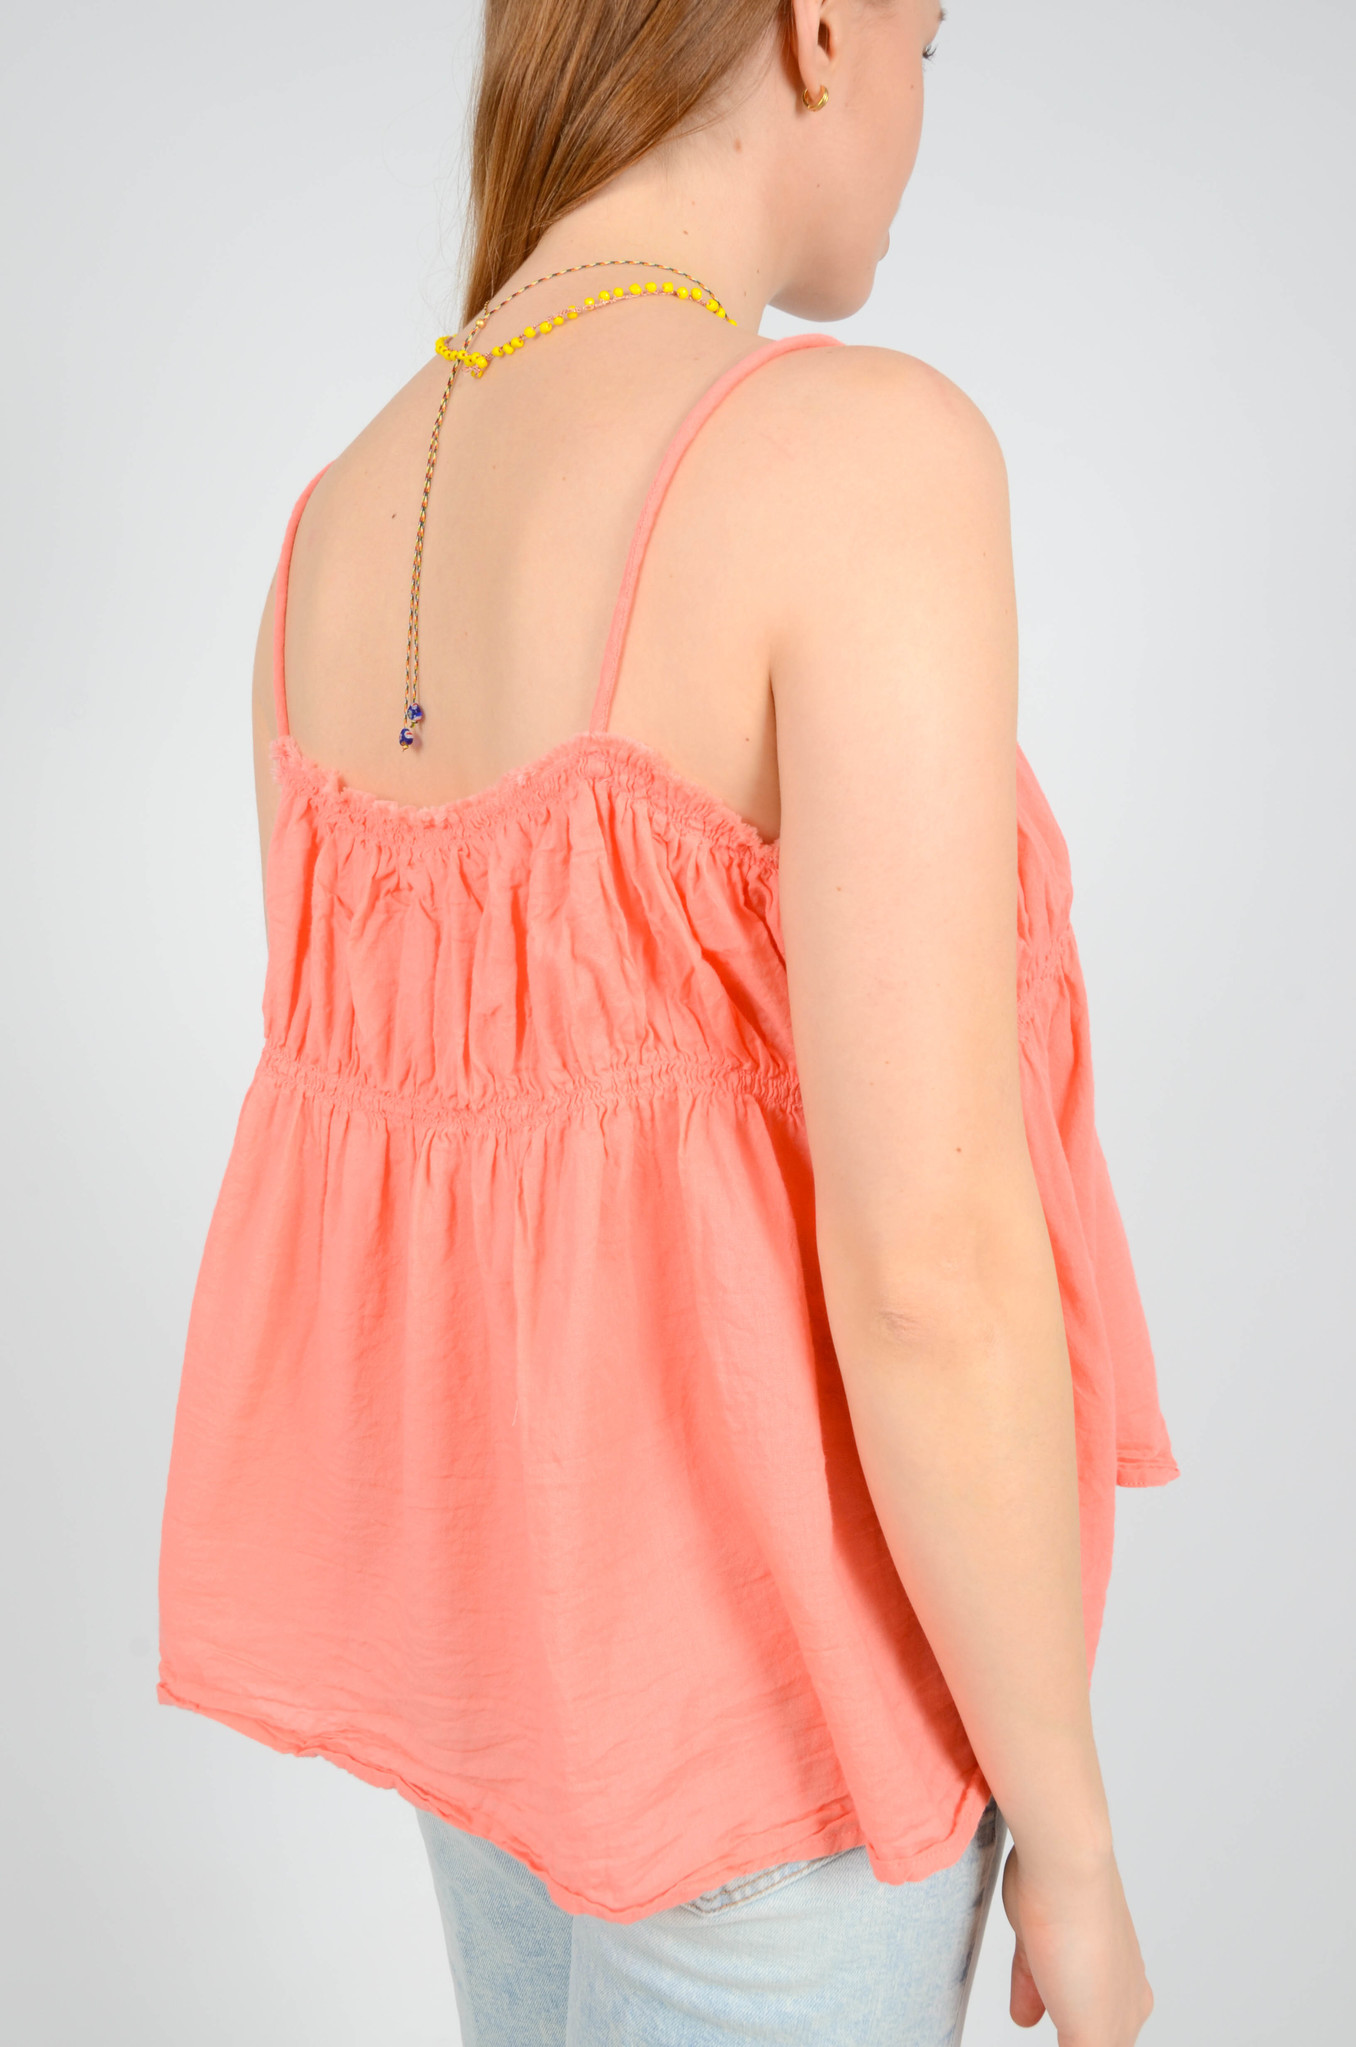 HAILEY TANKTOP IN CORAL-4